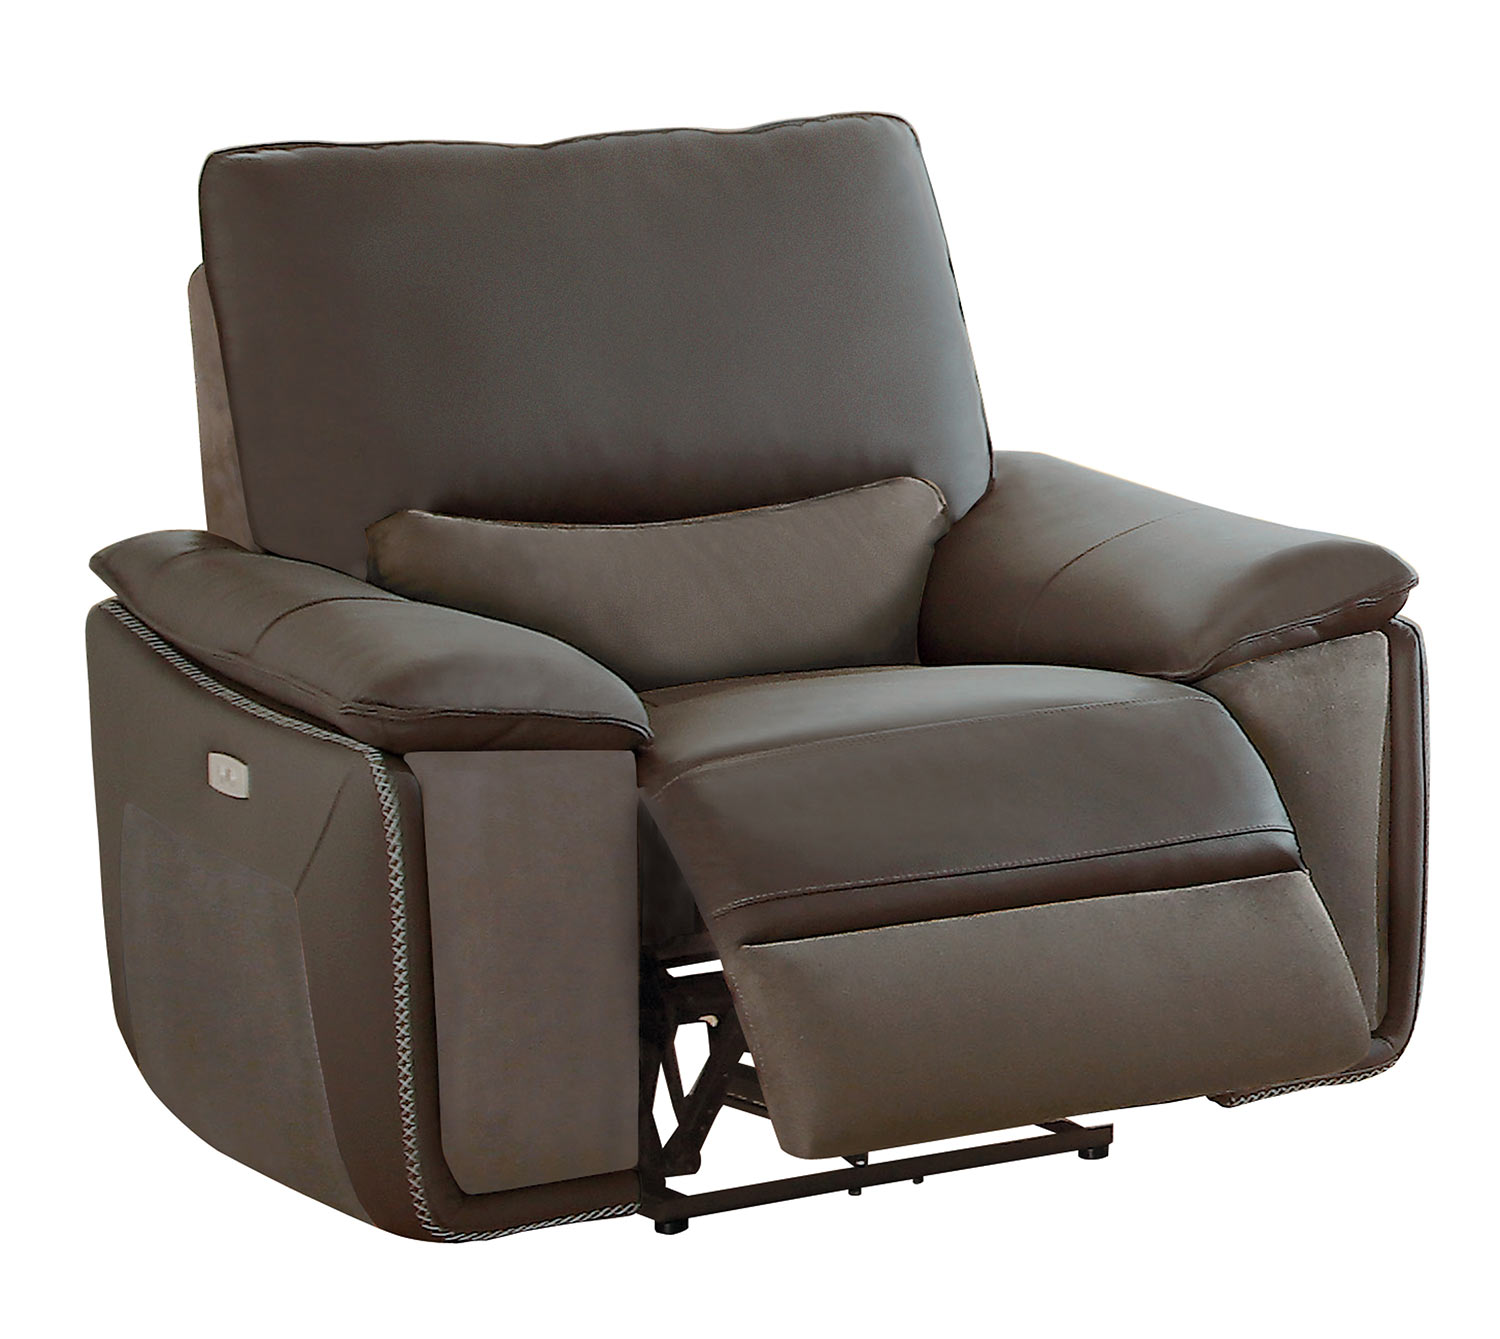 Homelegance Corazon Power Reclining Chair - Navy Gray Top Grain Leather/Fabric